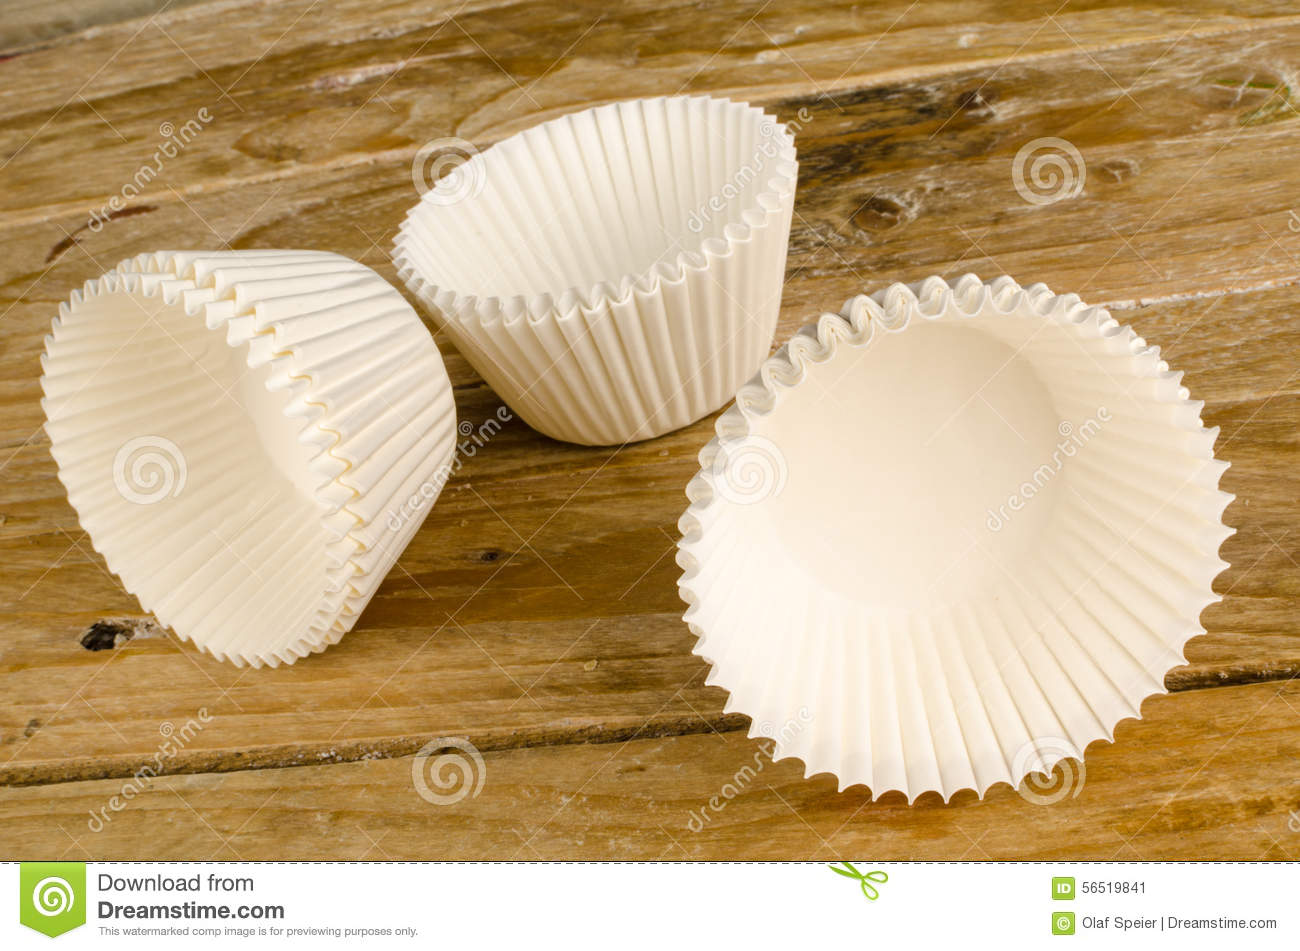 Cupcake Liners Stock Image Image Of Horizontal Wooden